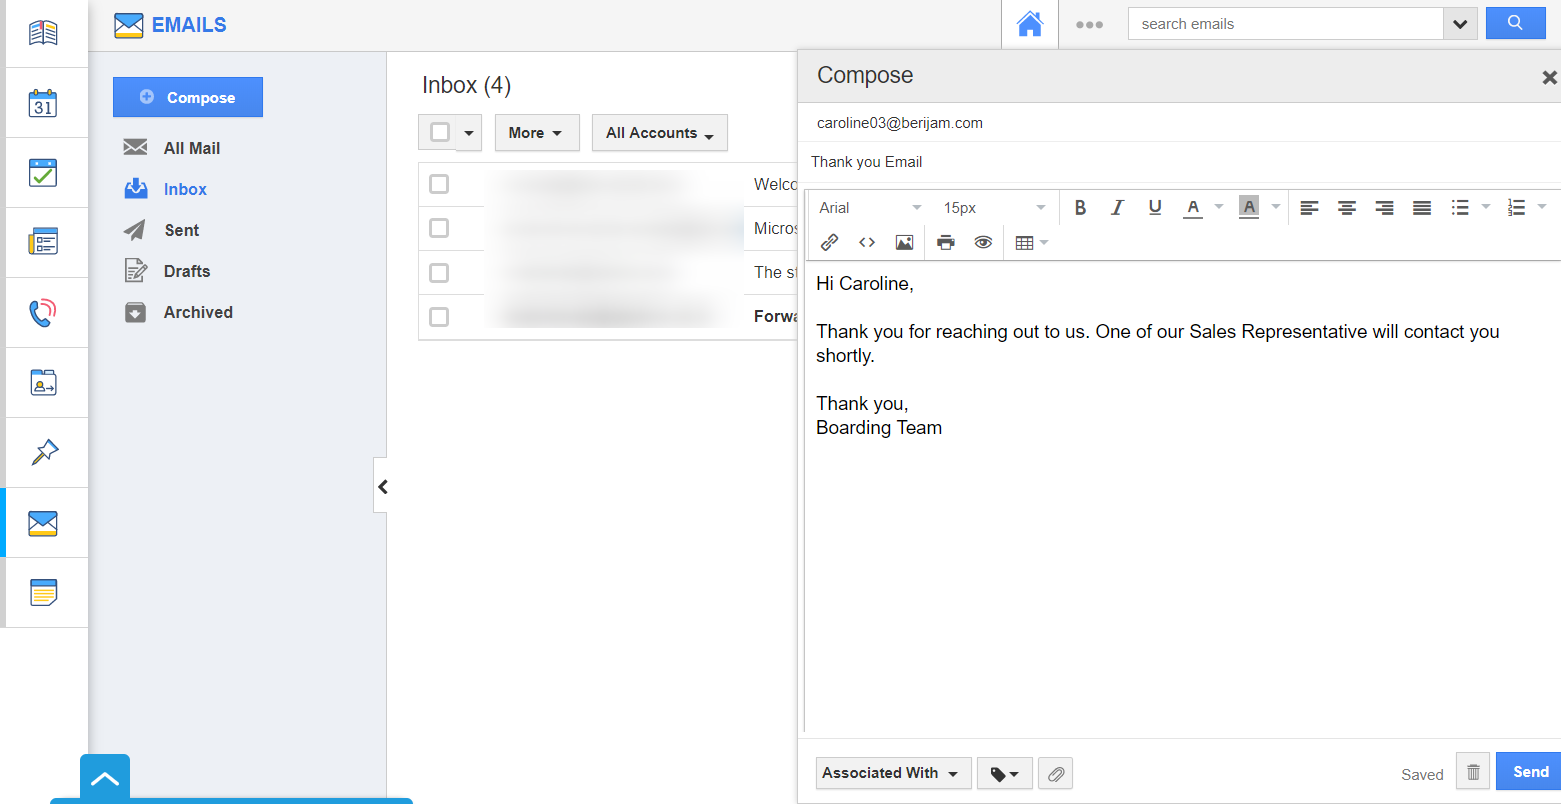 Compose Email